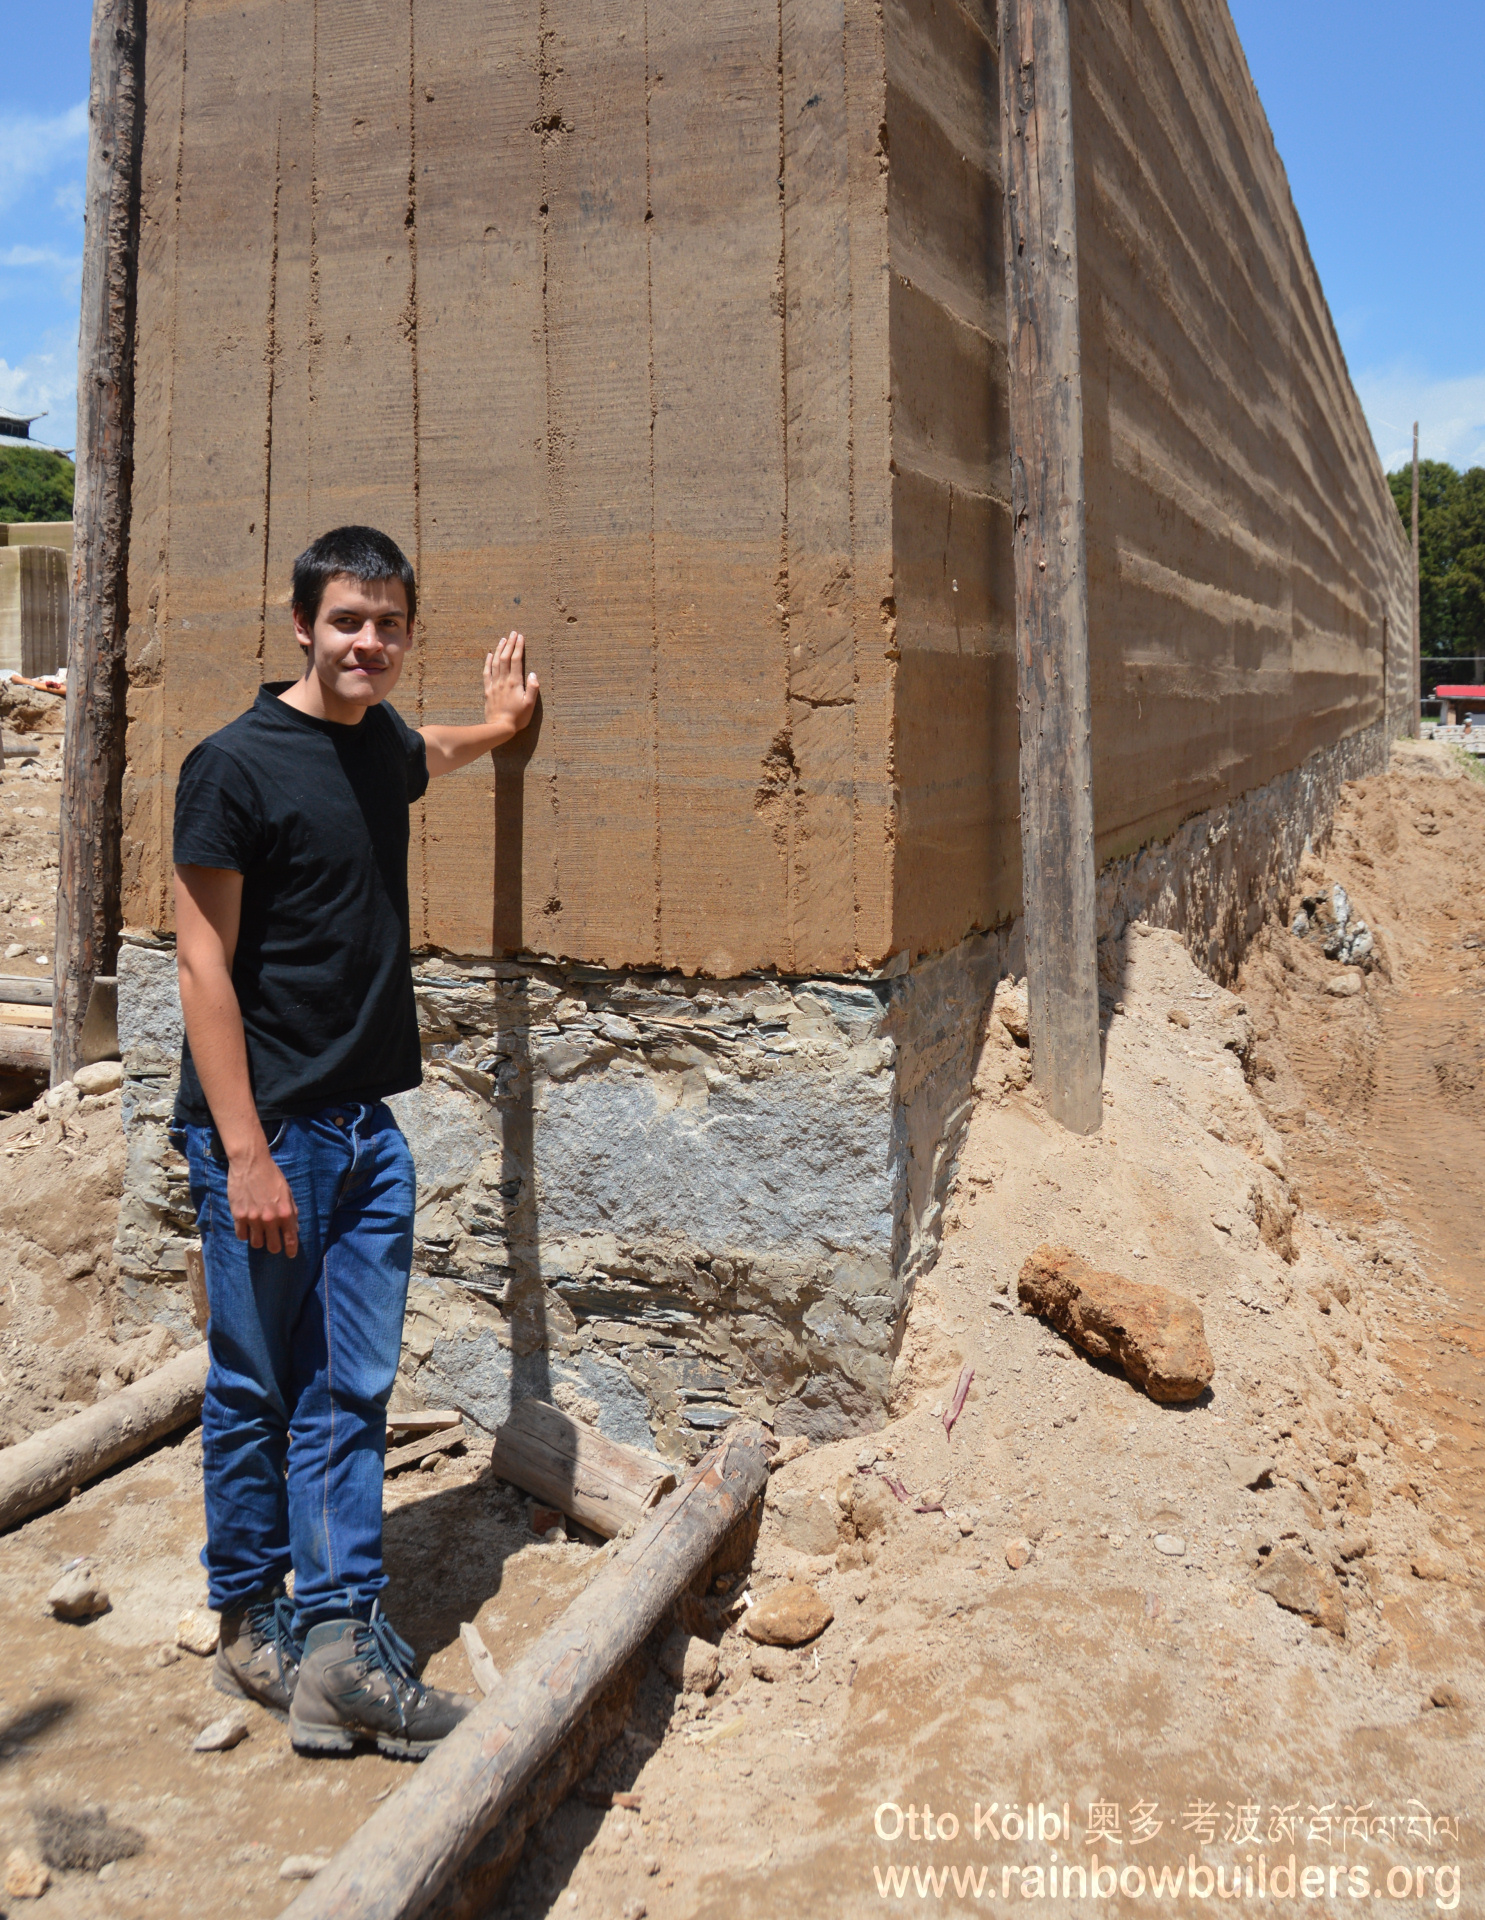 Timothy Loayza leaning on the perimeter wall which is more than one meter thick. This is necessary in a region where earthquakes are not uncommon.